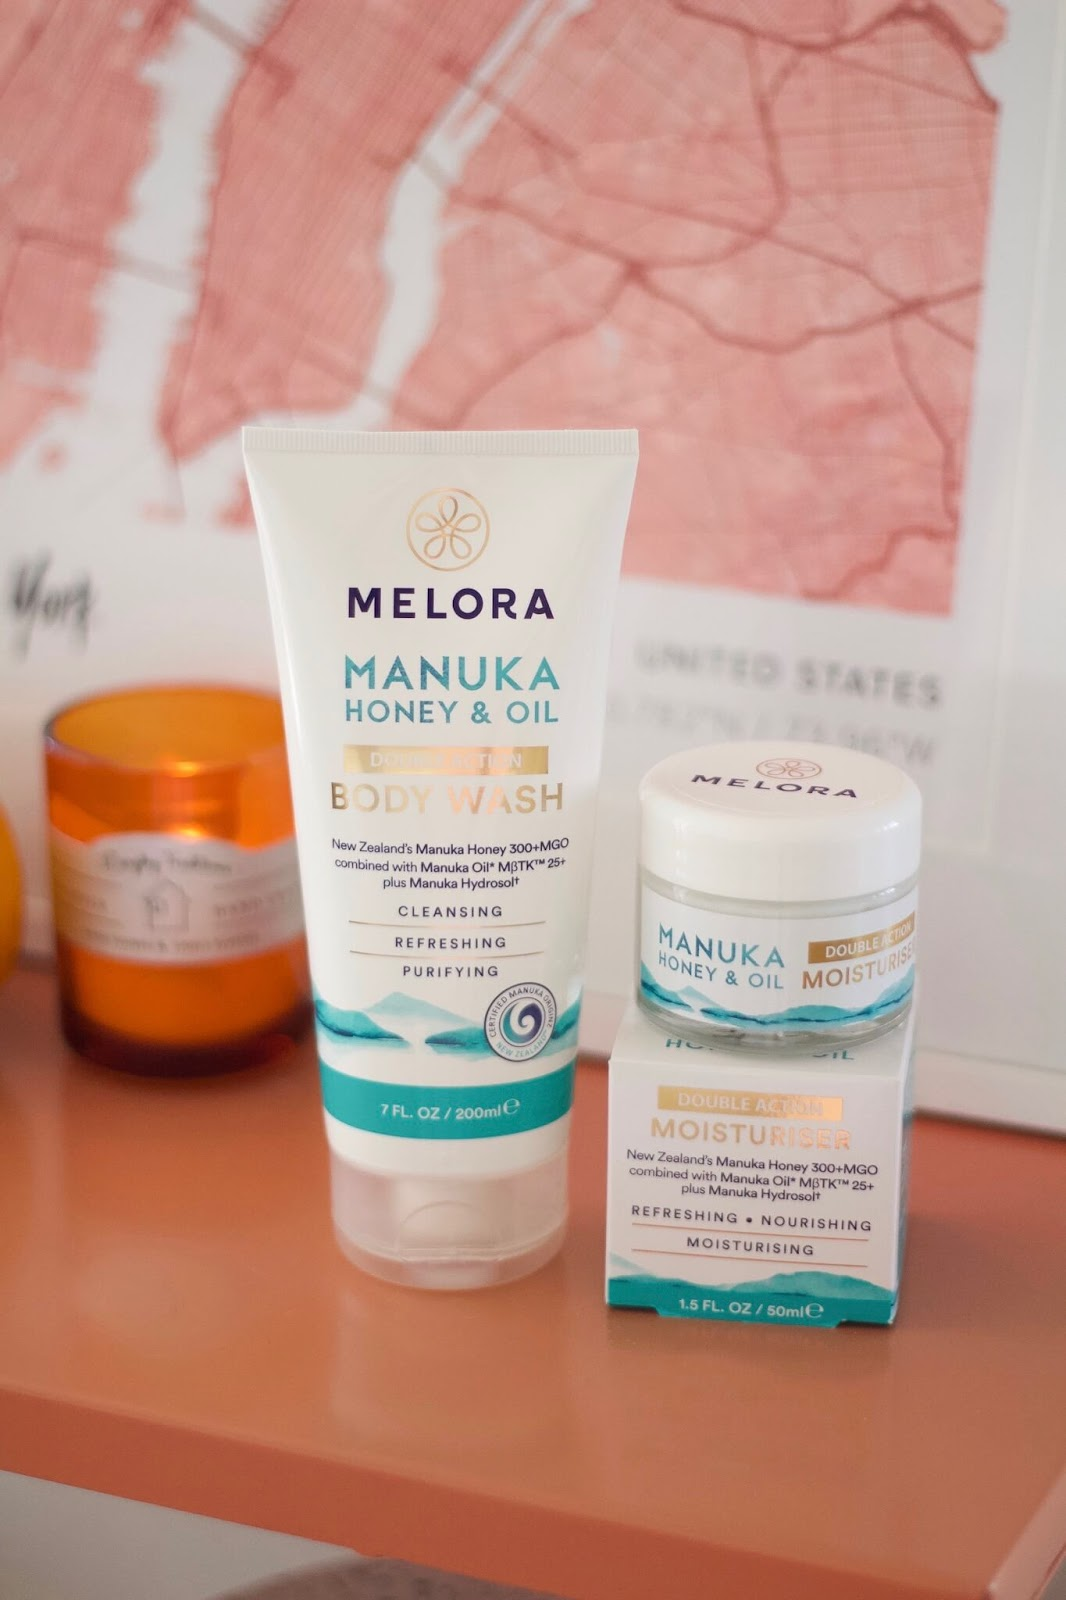 Melora review